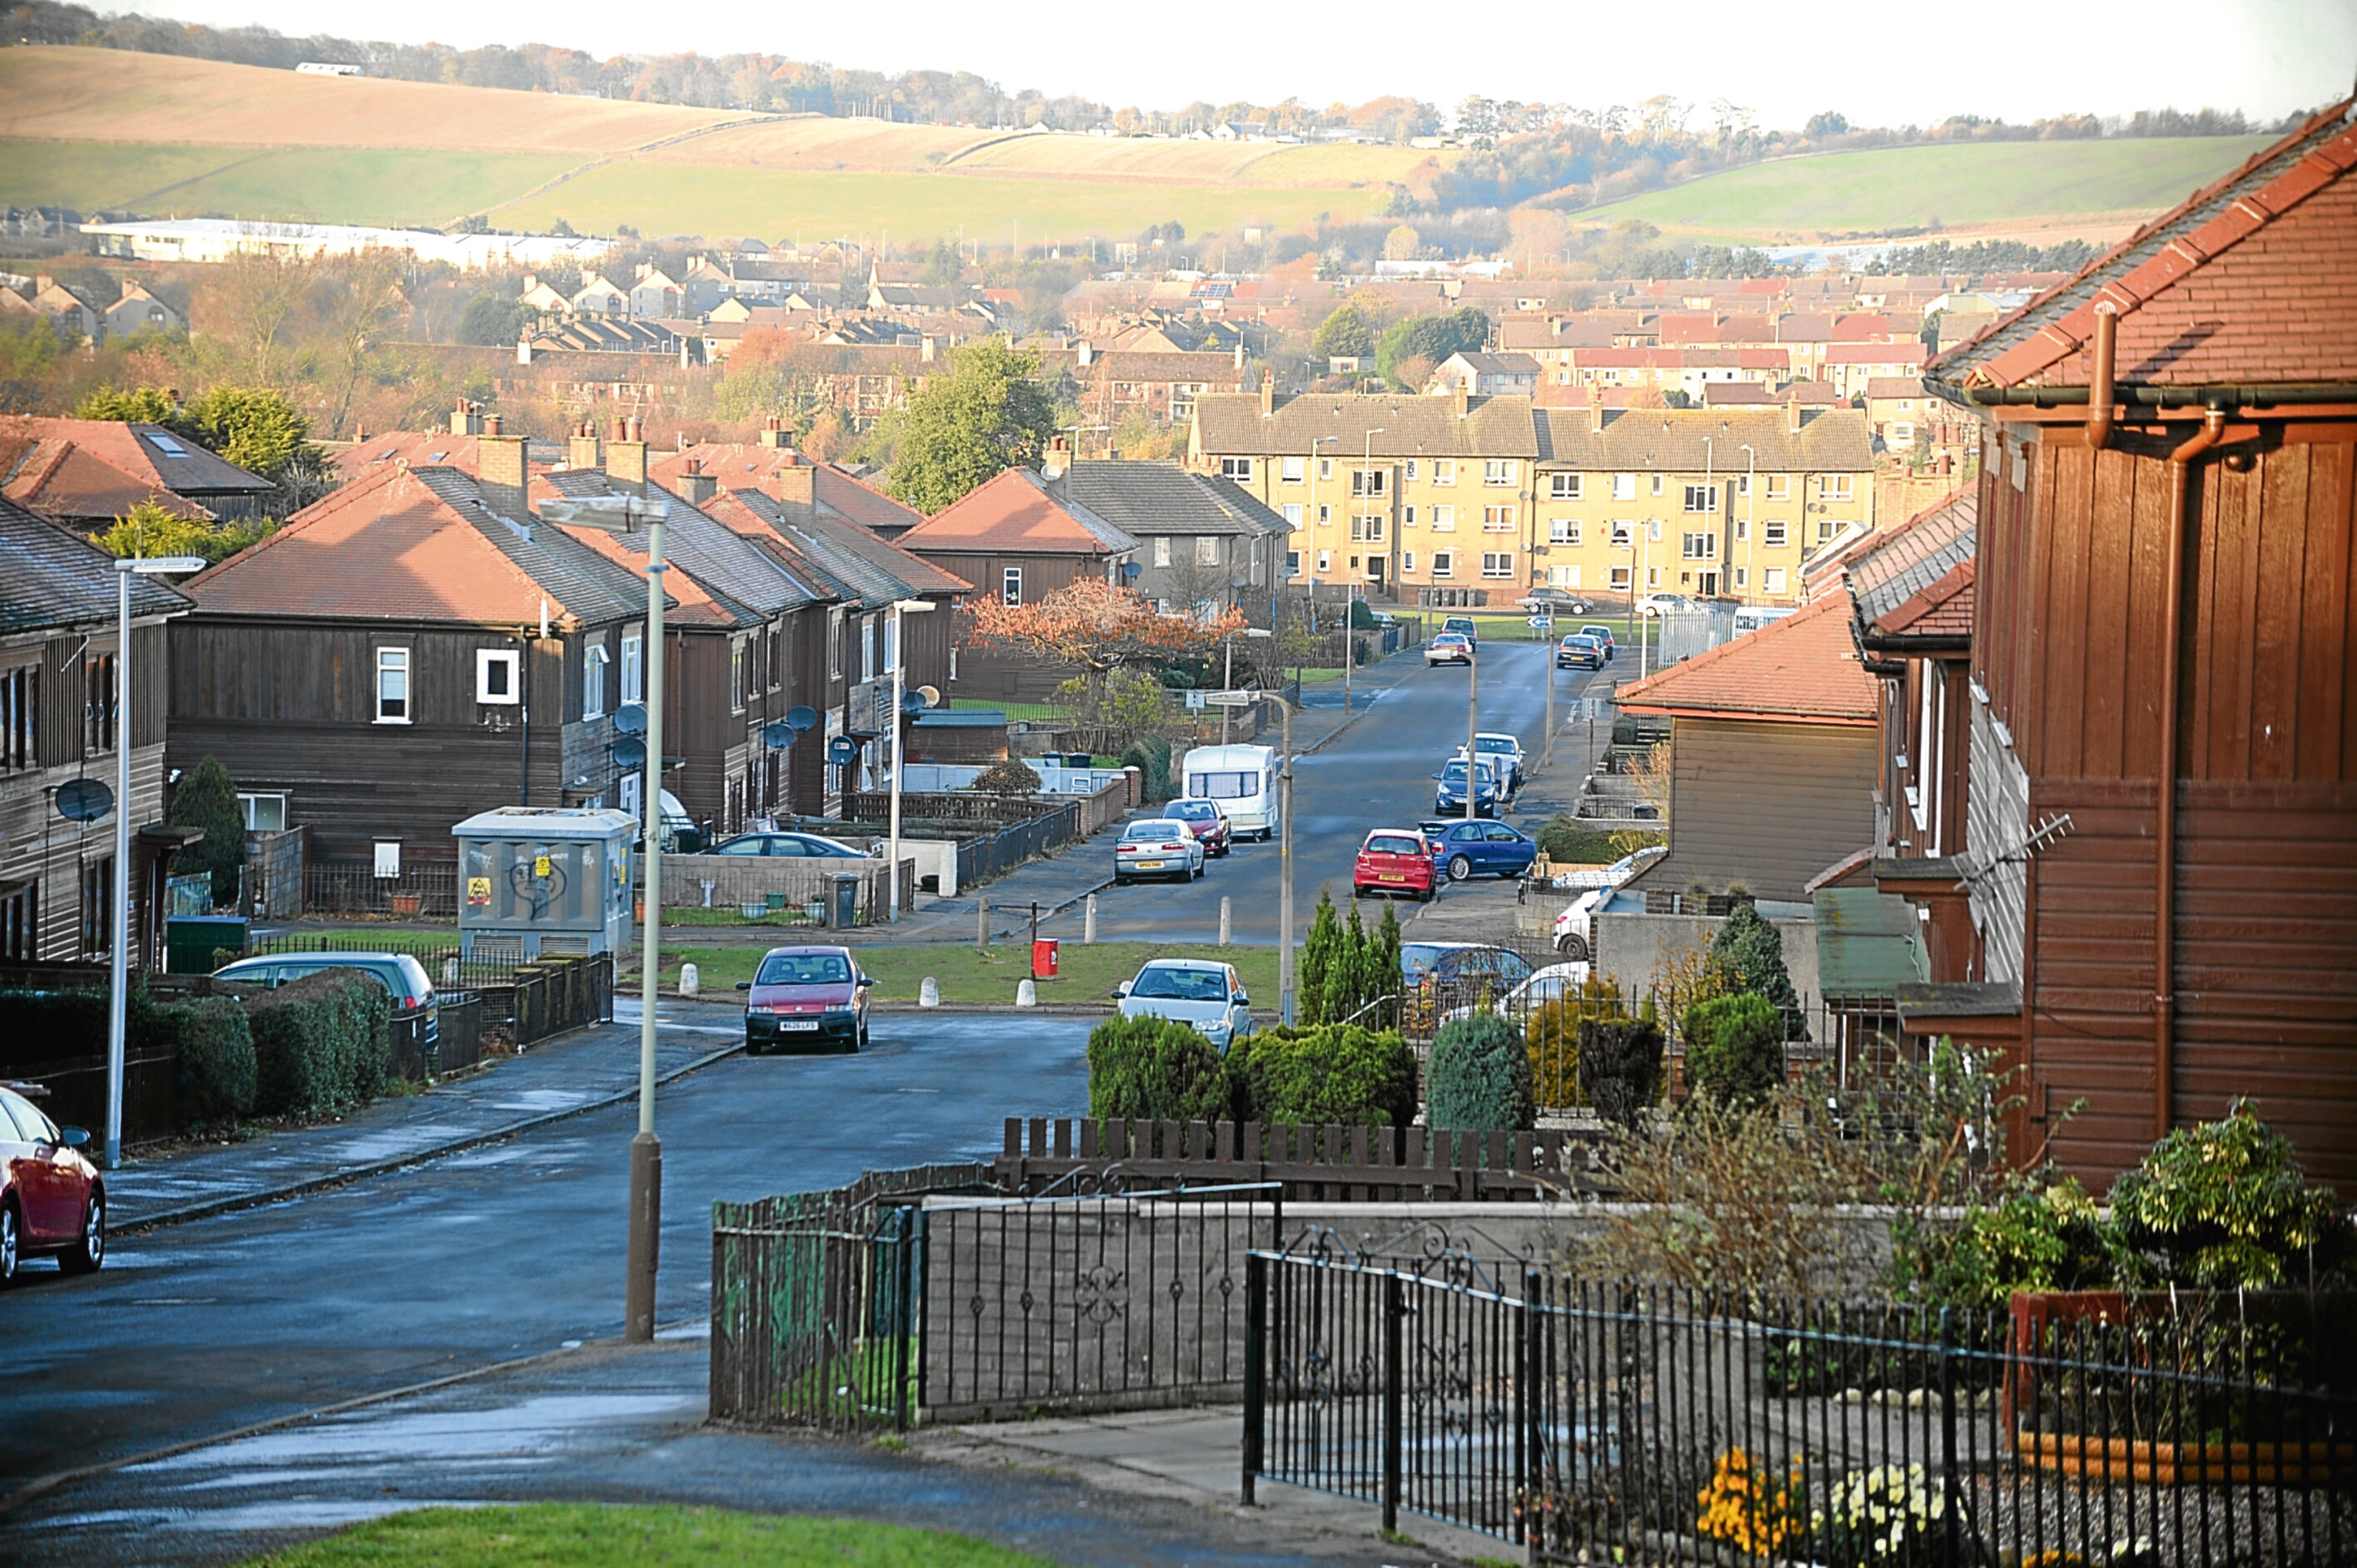 Linlathen is one of the most deprived areas in Scotland.